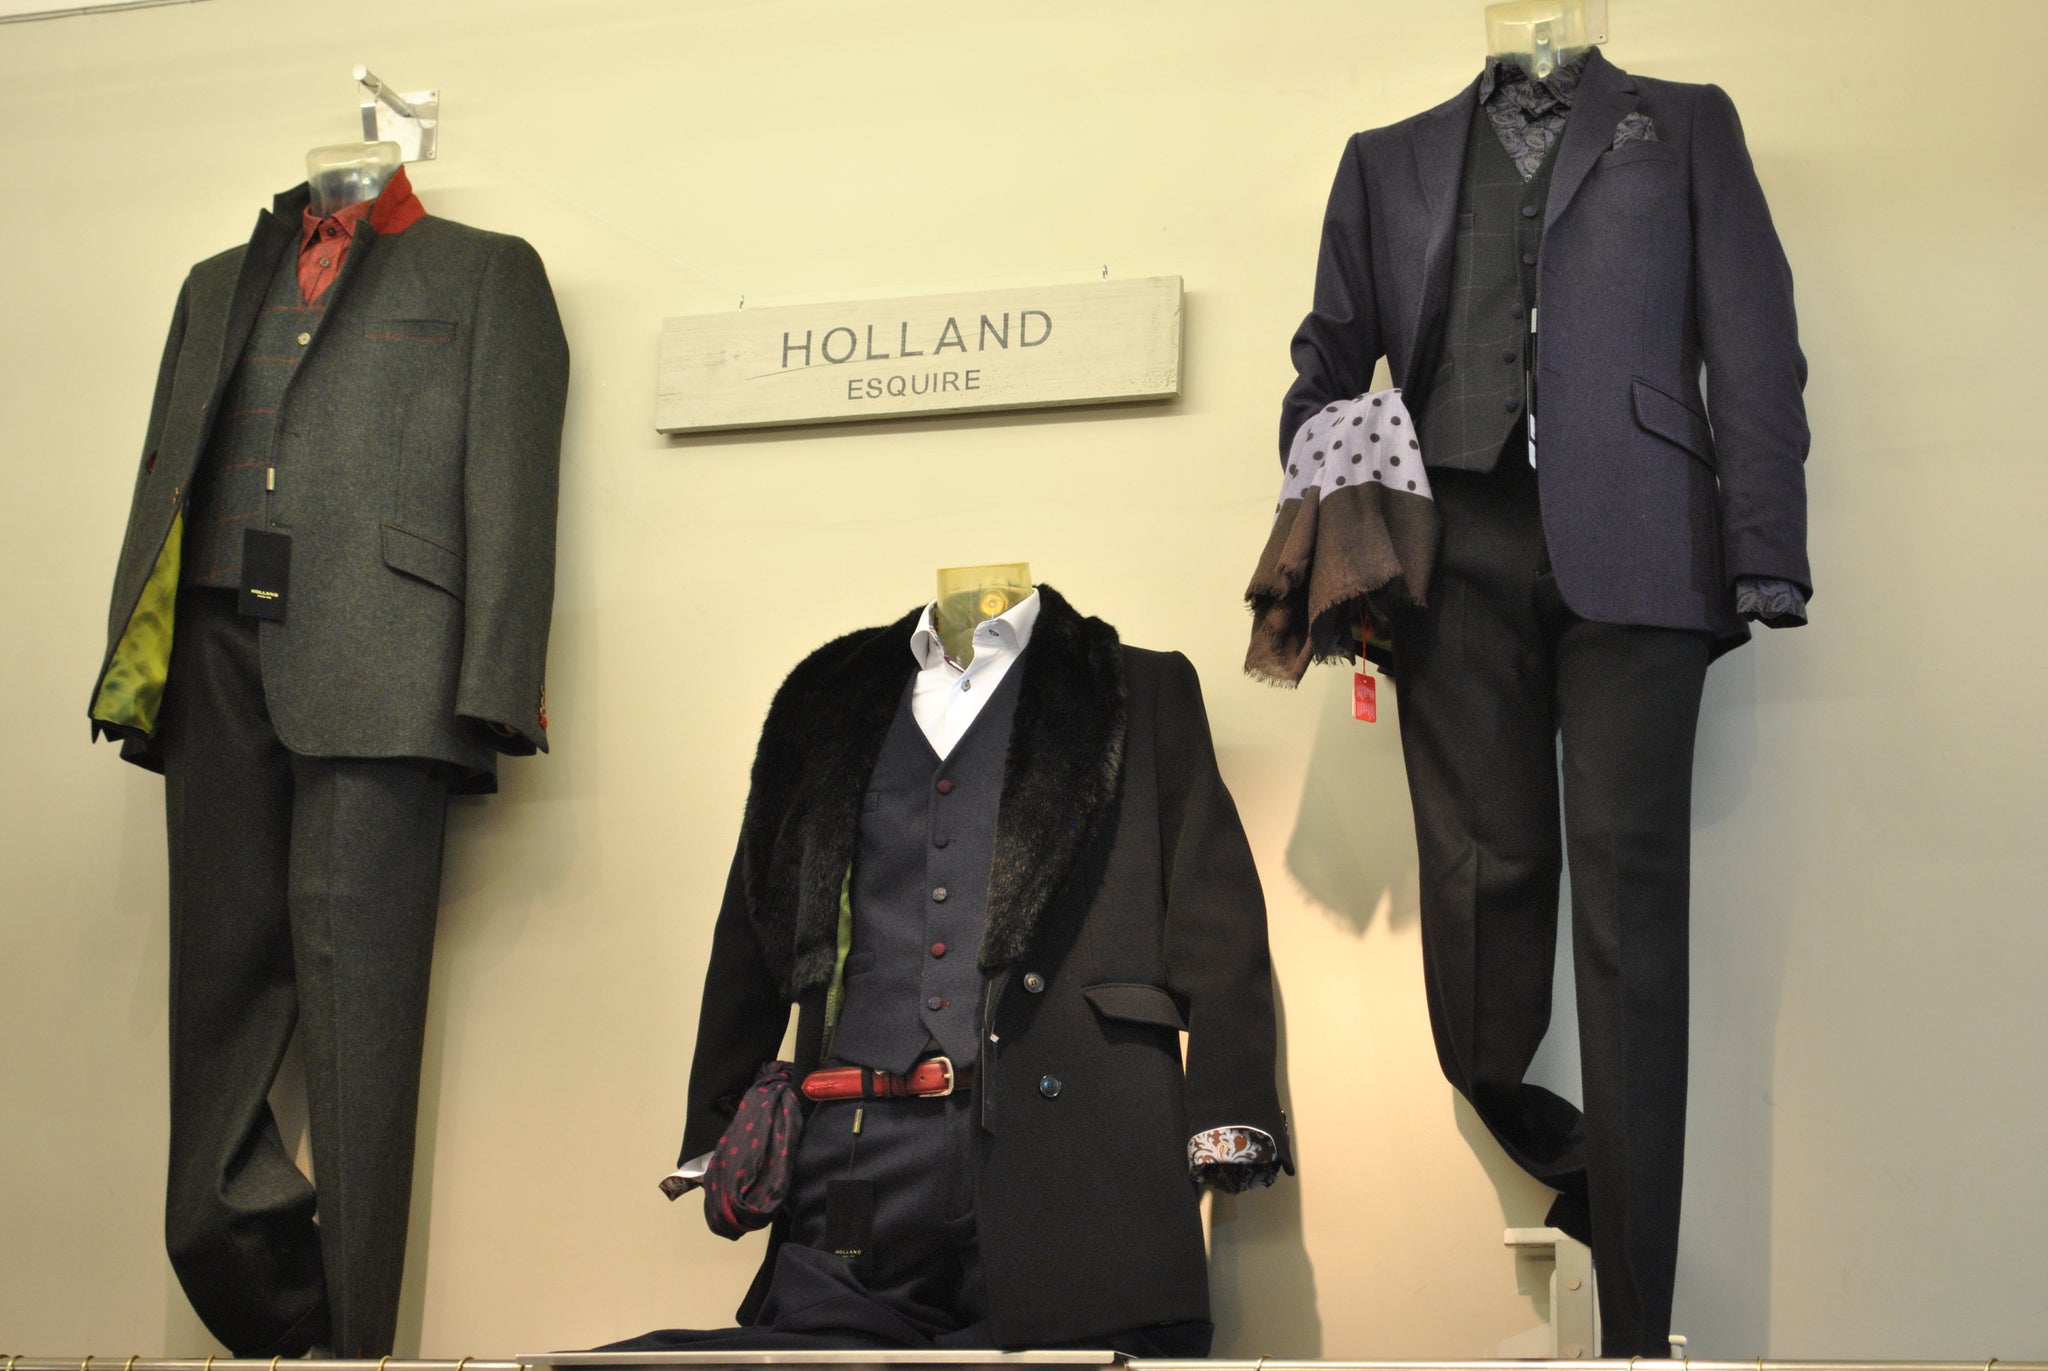 Nick Holland attended the Lynx of Harrogate, Holland Esquire x Moon event.